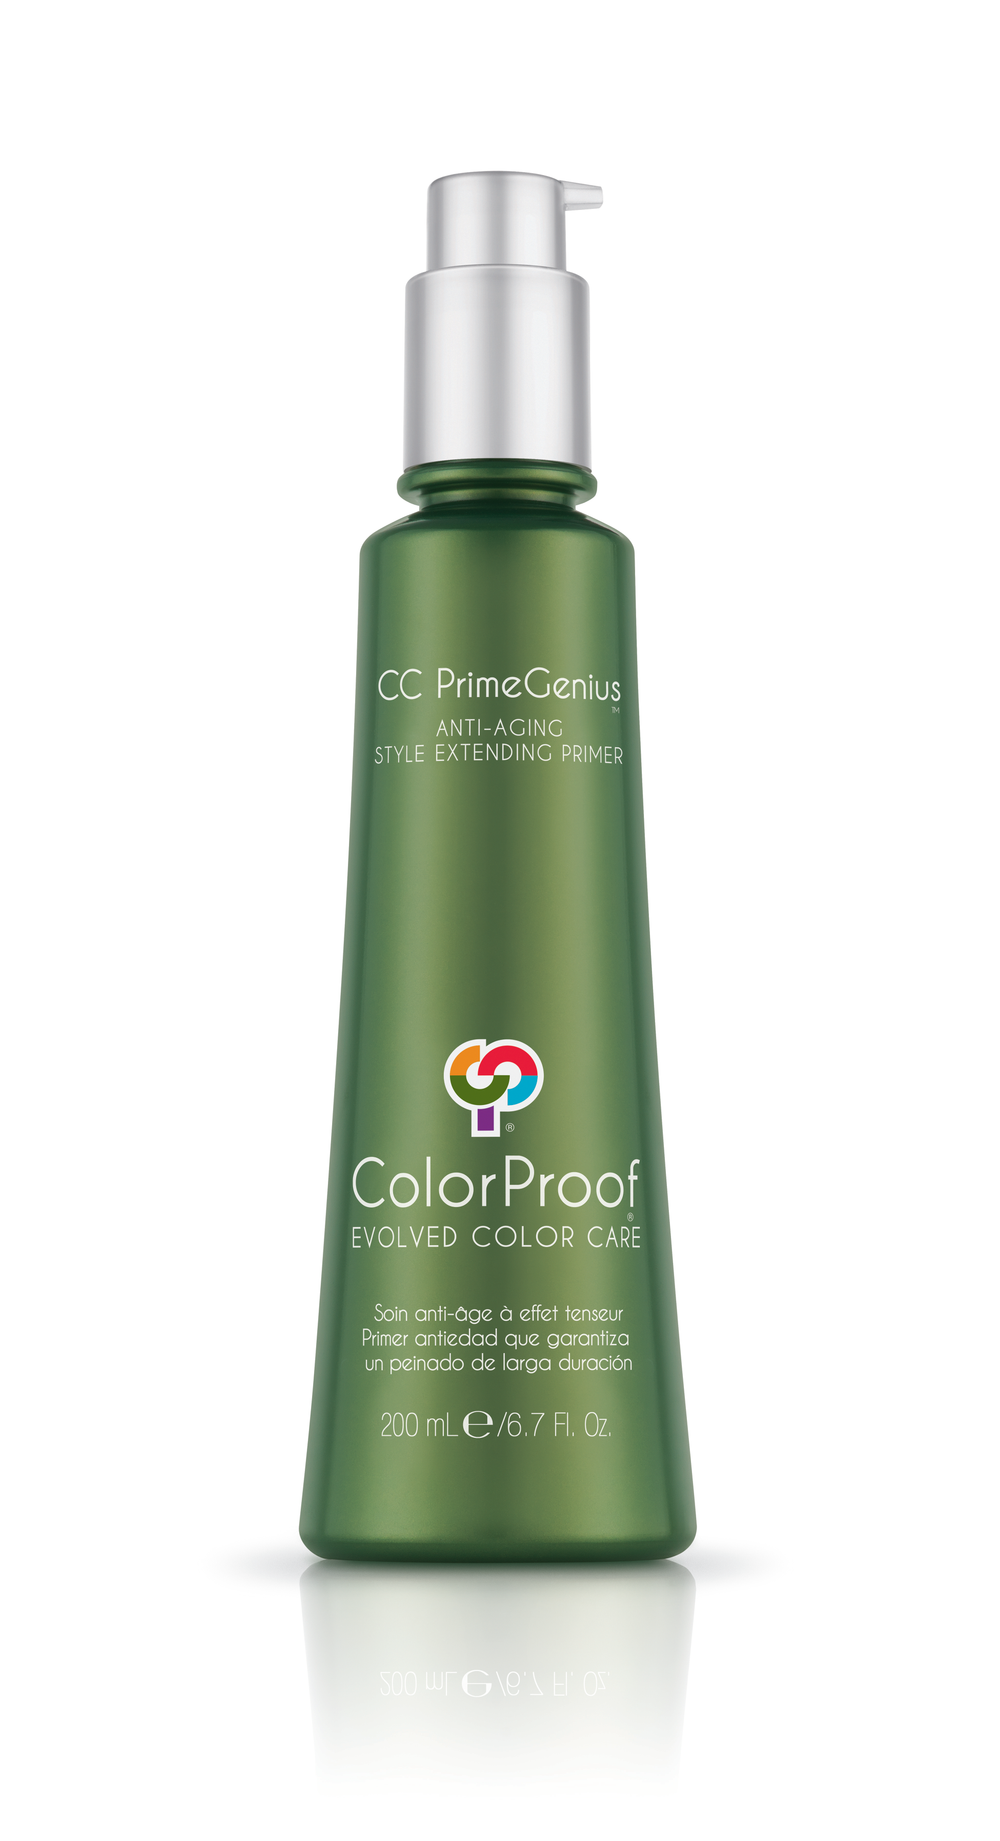 STEP 1: Begin style by applying CC PrimeGenius Anti-Aging Style Extending Primer throughout damp hair.